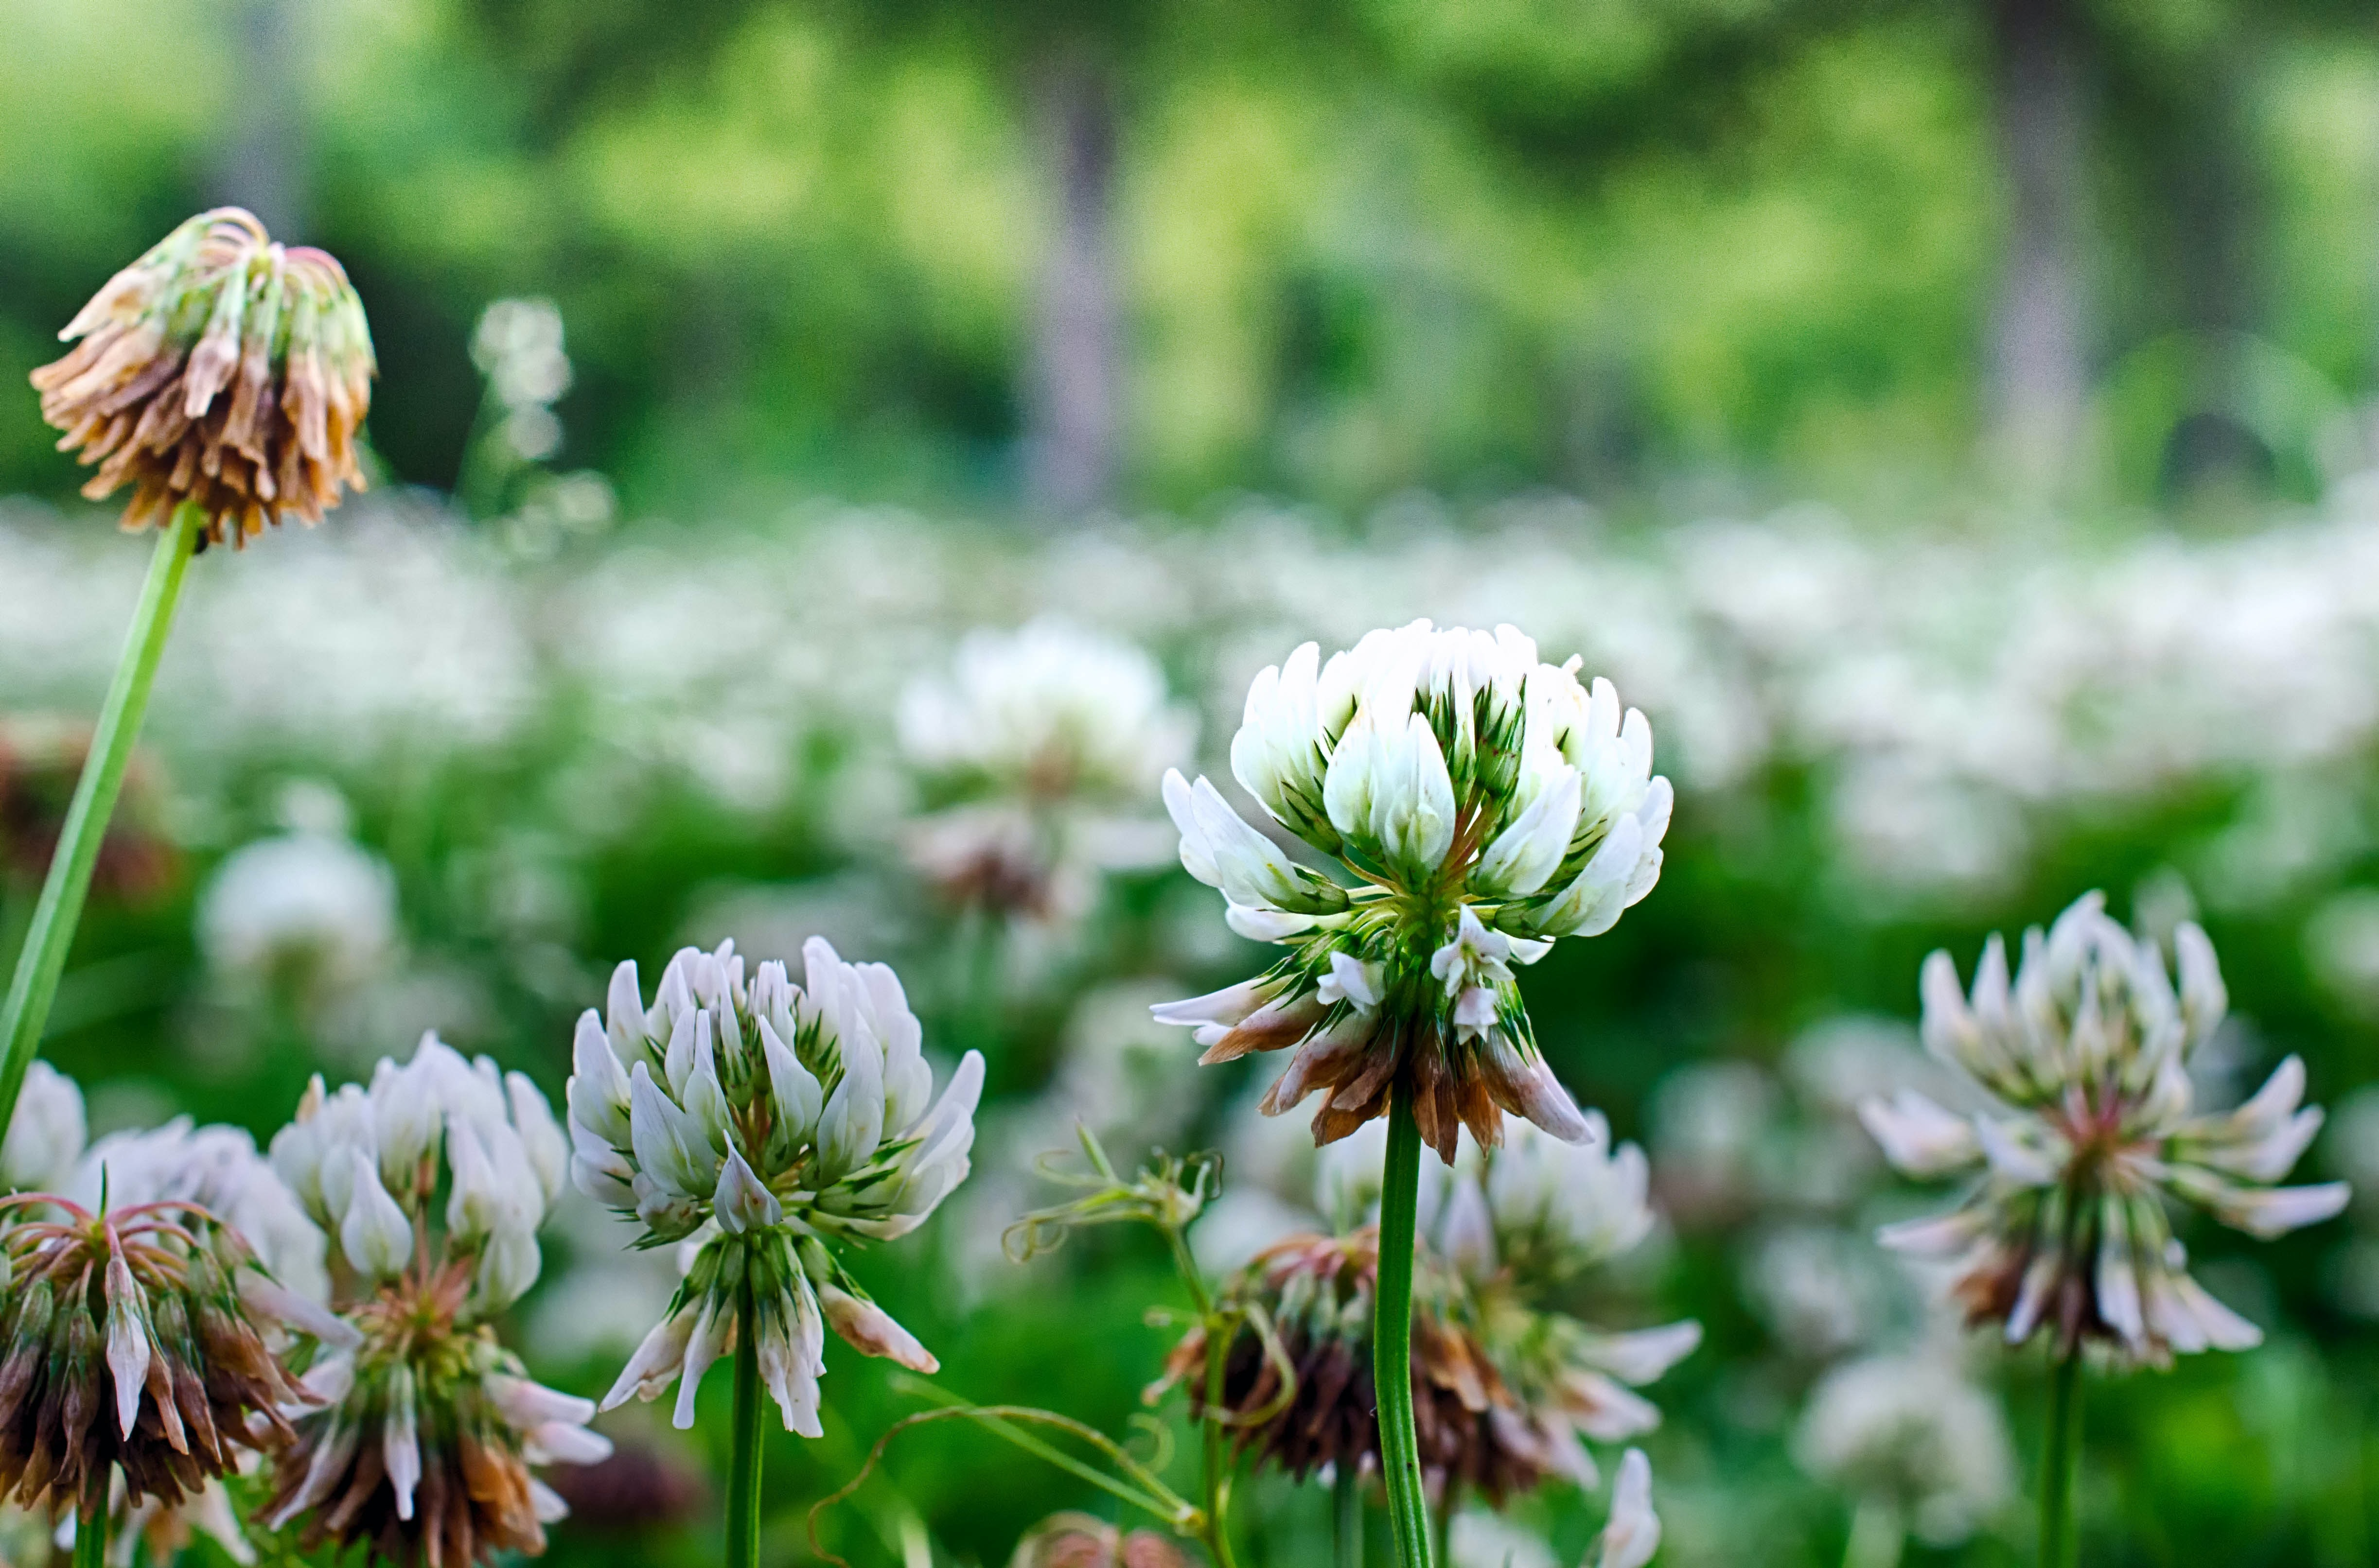 shallow focus of white flowers